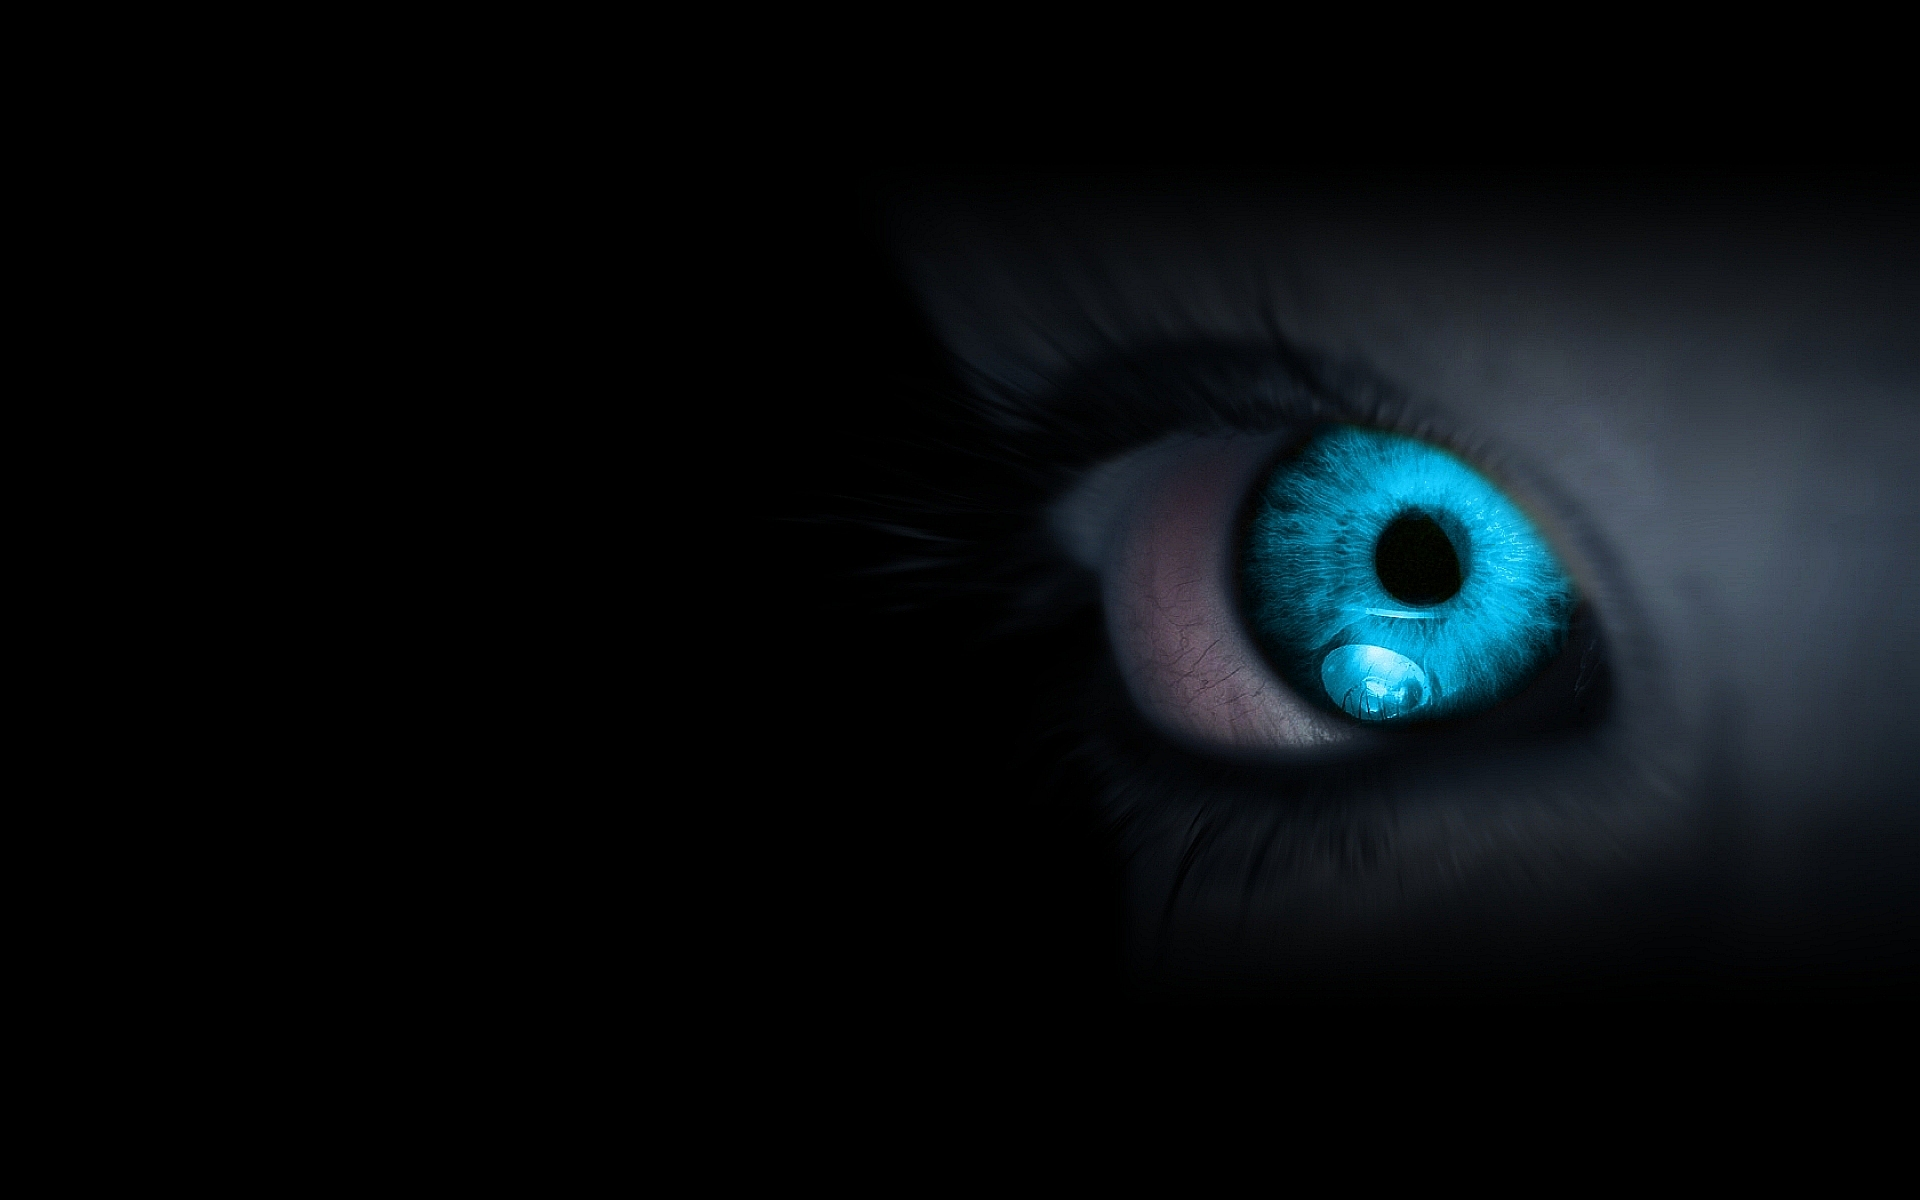 Blue Eyes Wallpaper